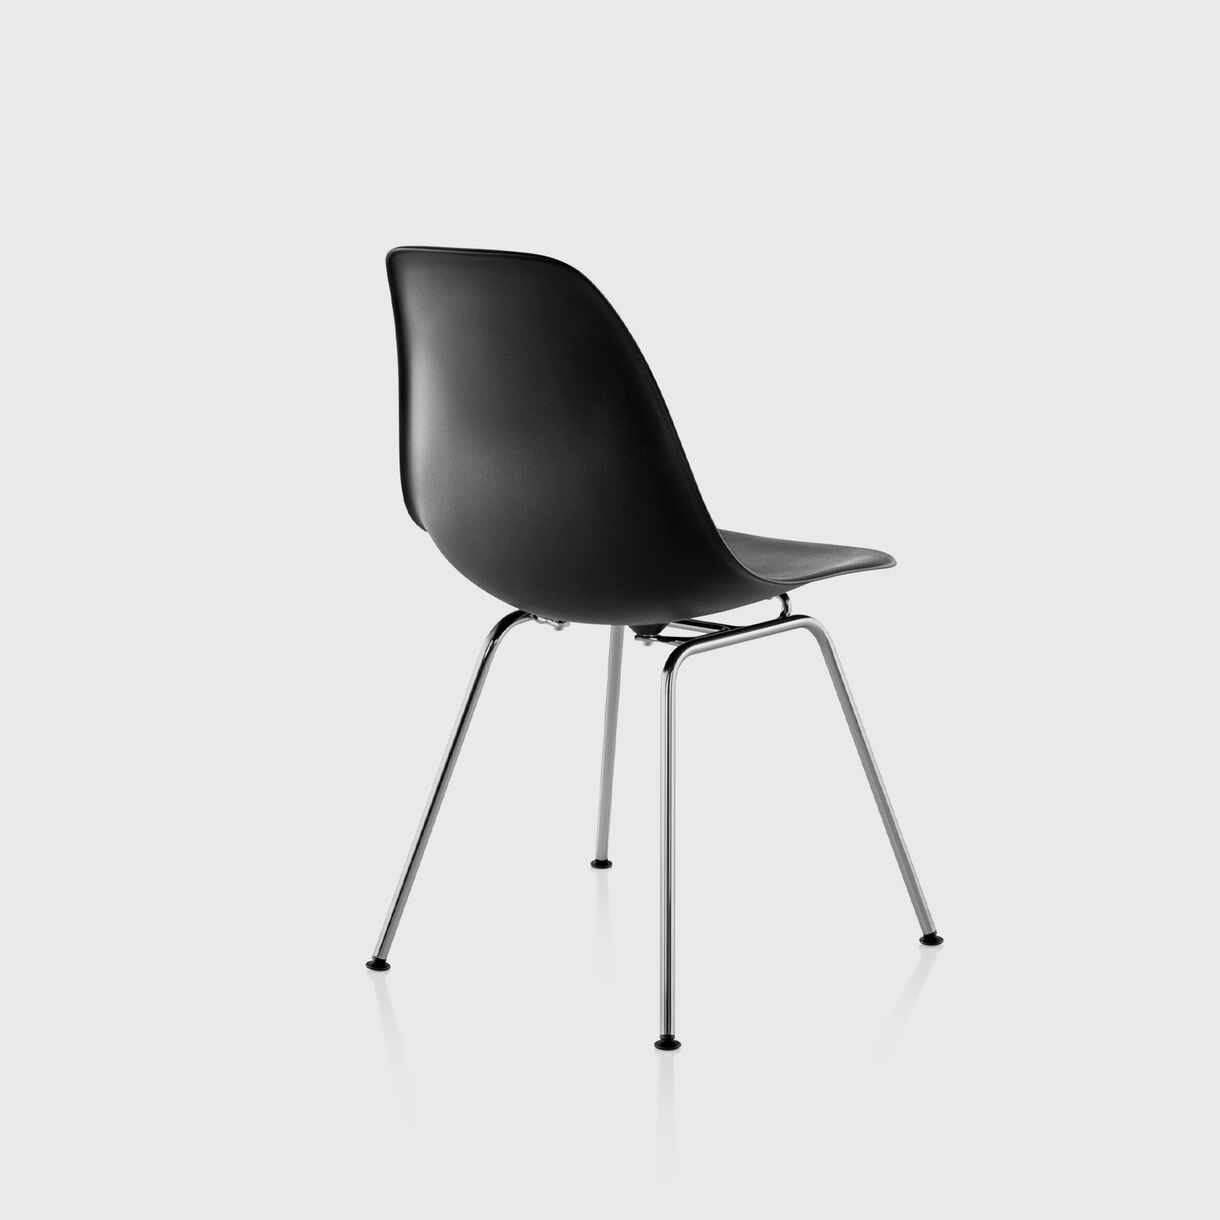 Eames Moulded Plastic Side Chair 4-Leg, Black, Chrome